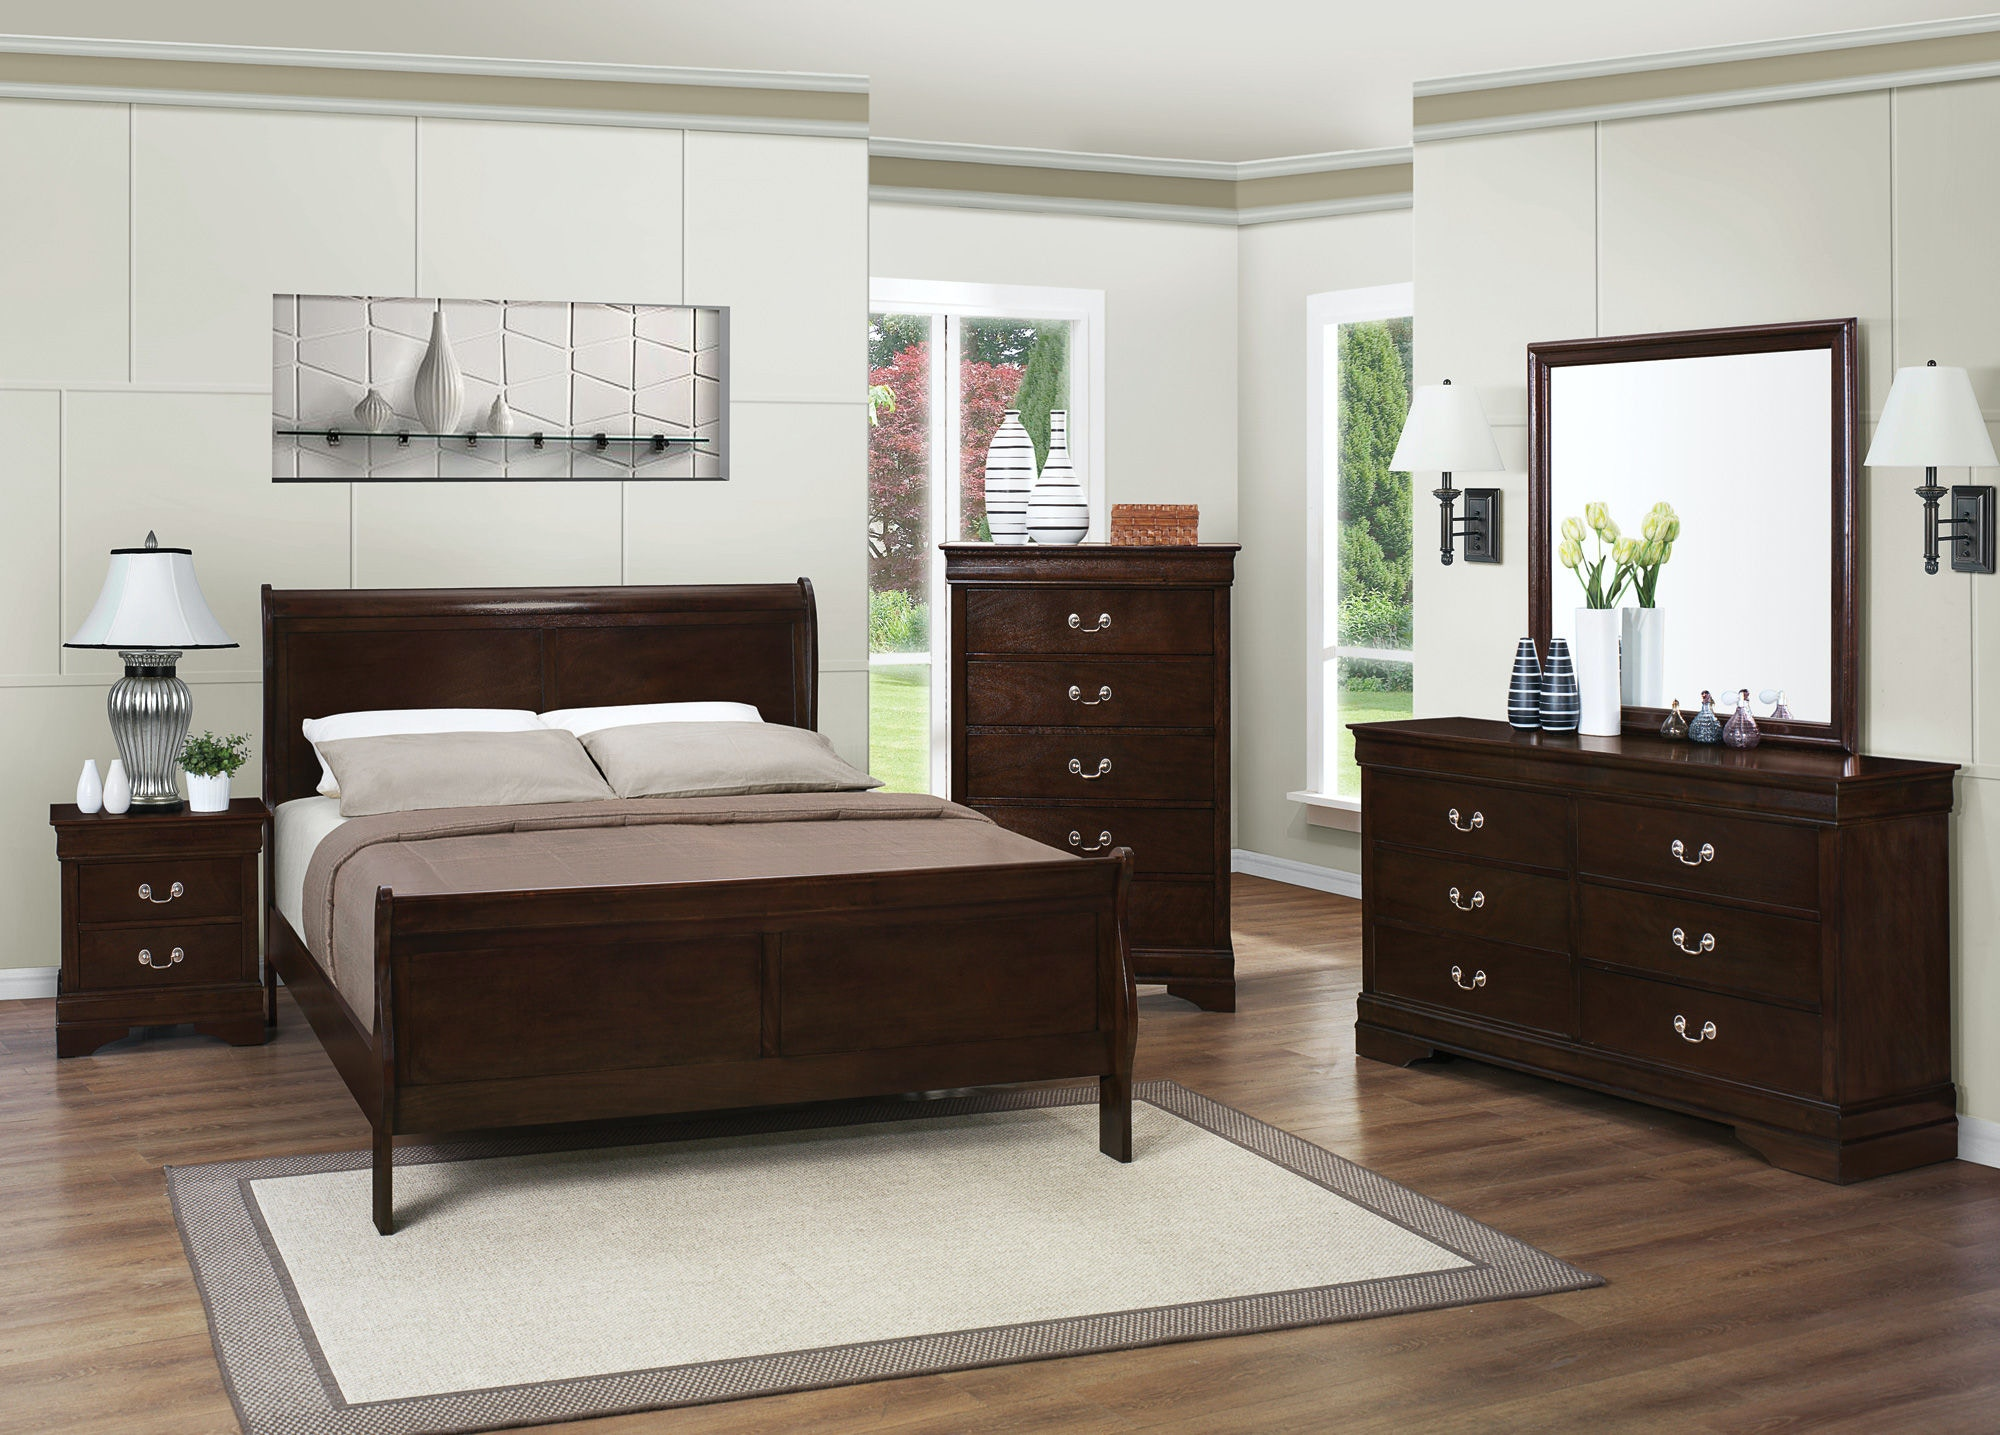 Coaster Bedroom Queen Bed 202411Q   The Furniture House Of Carrollton    Carrollton, Newnan, Bremen And Atlanta, GA